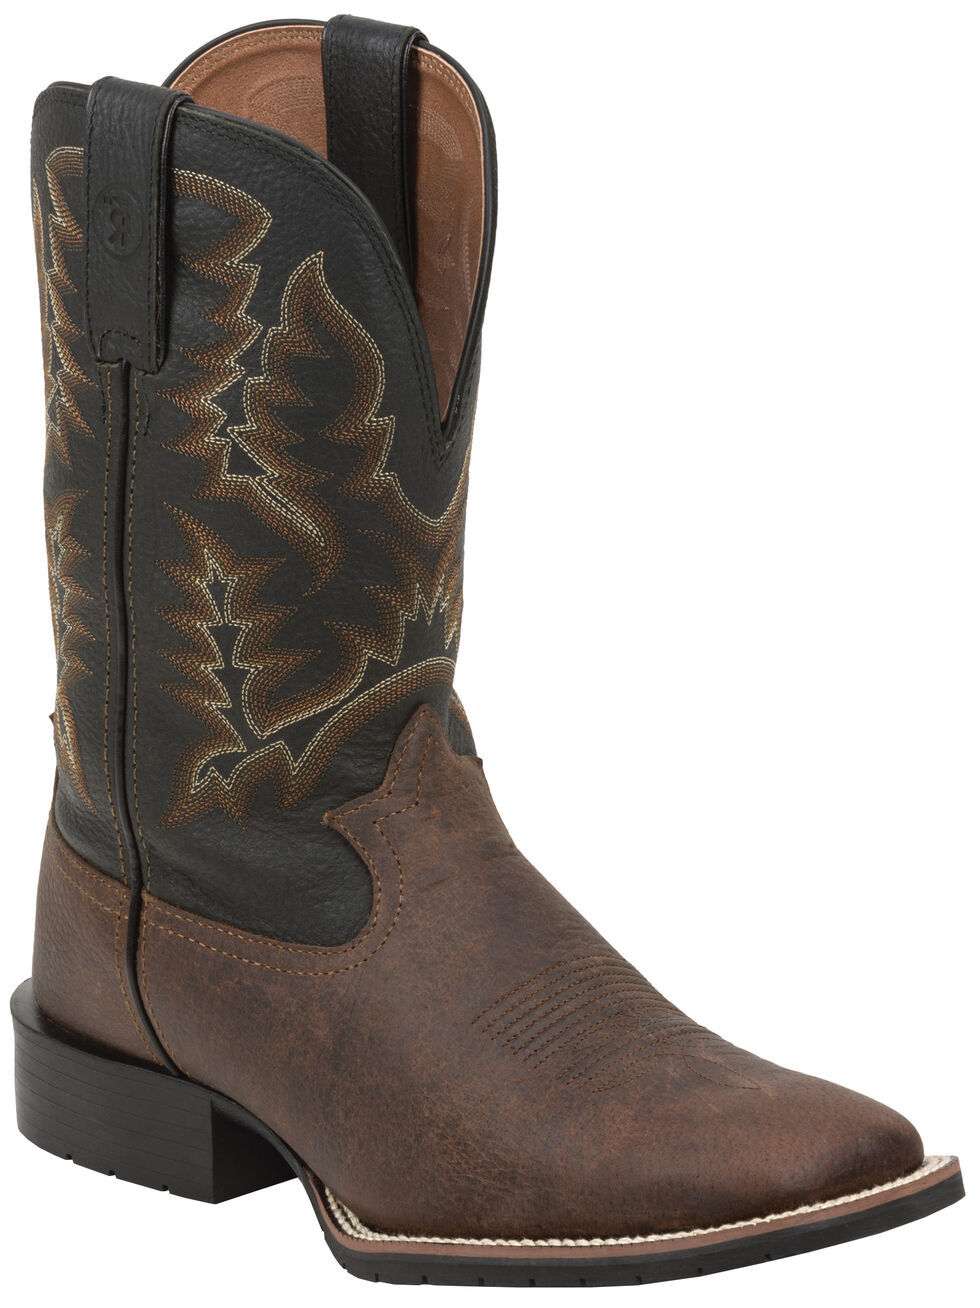 Tony Lama Men's Dwale 3R Pitstop Western Boots - Square Toe, Brown, hi-res